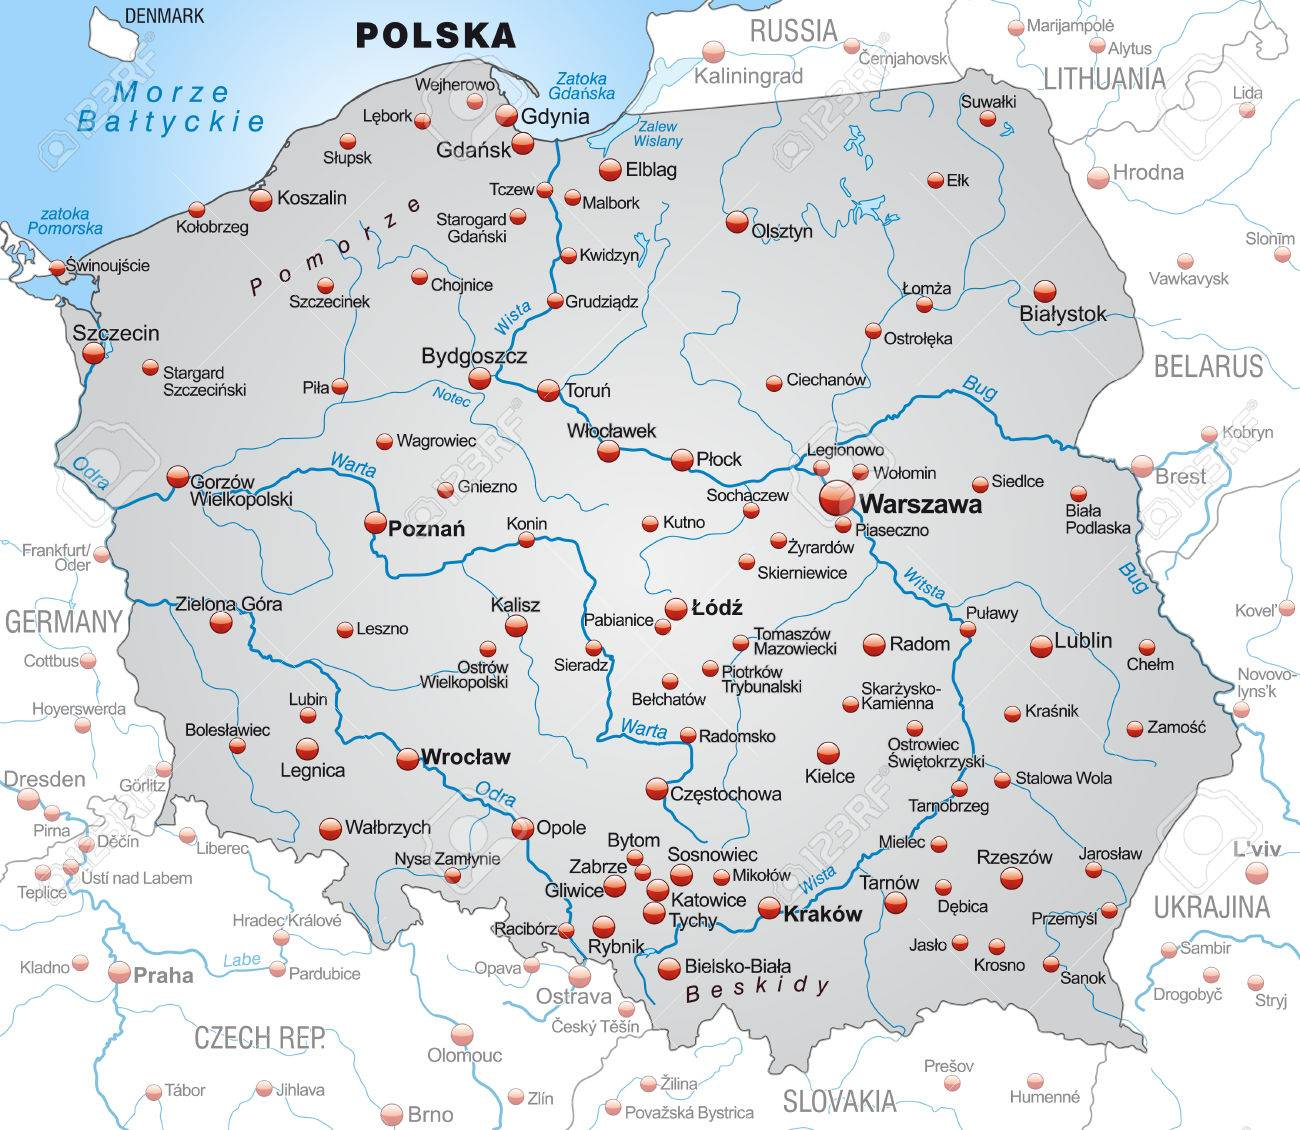 Lomza Poland Map.Map Of Poland As An Overview Map In Gray Royalty Free Cliparts